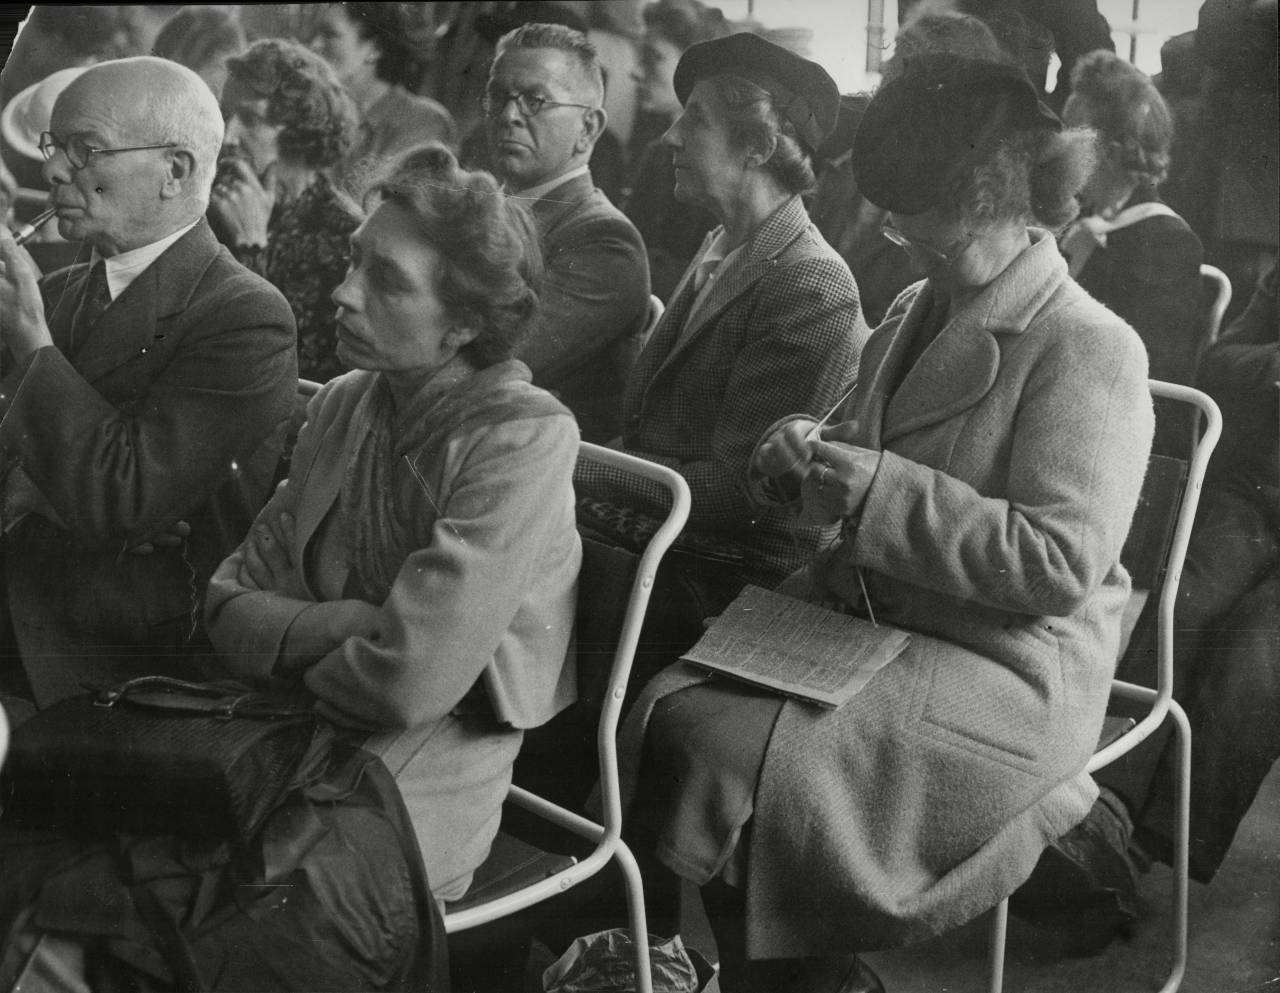 Labour Party Conference At Margate With Lady In Audience Knitting 1947.